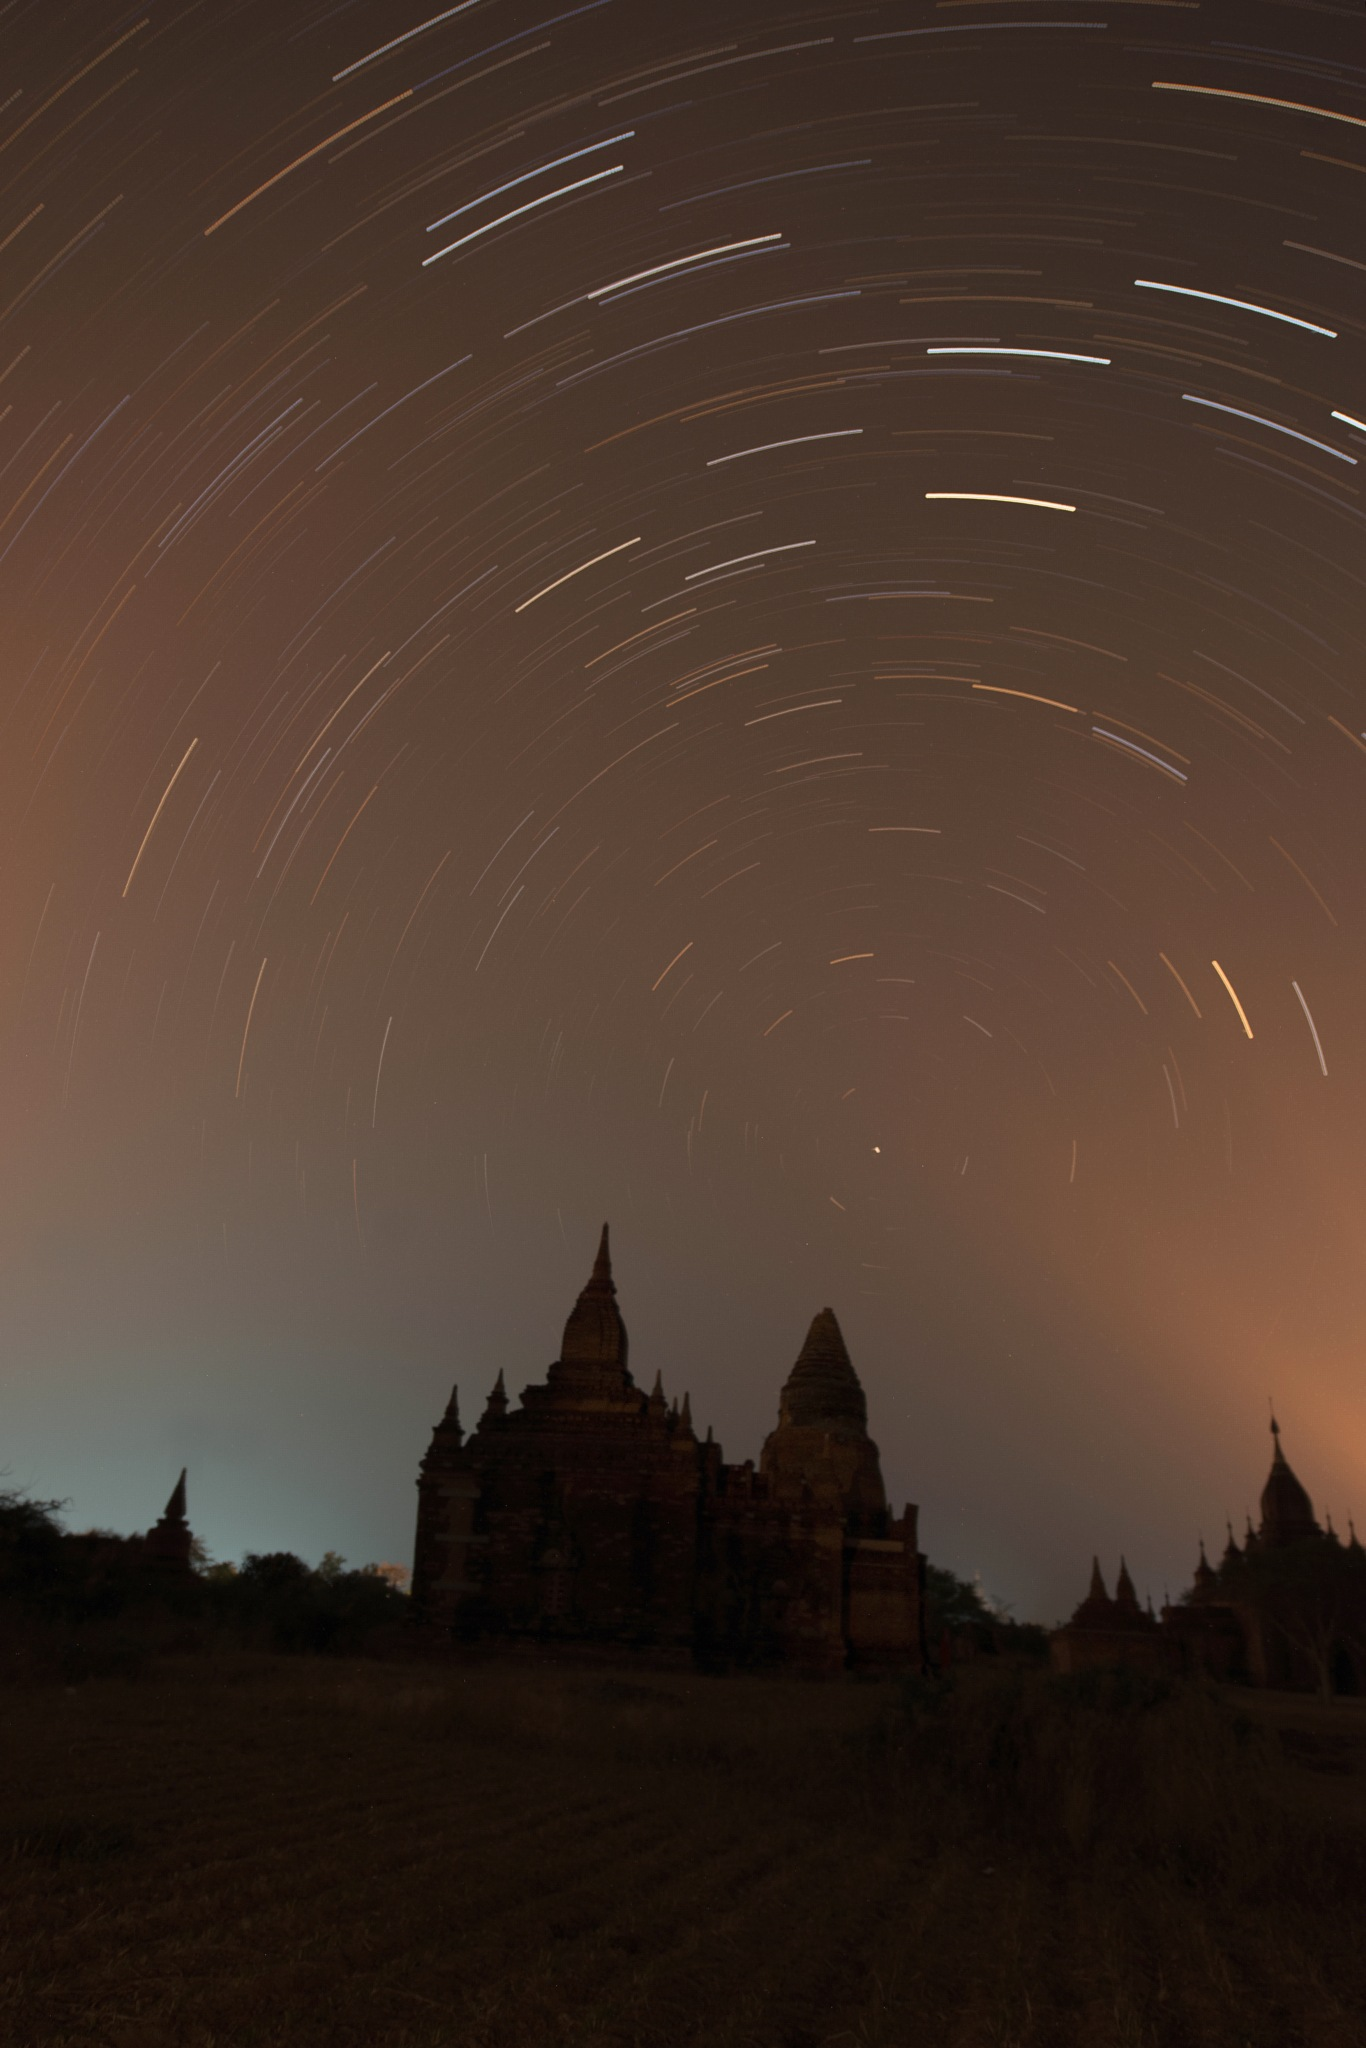 star trails over Pagan Myanmar by Mick1957